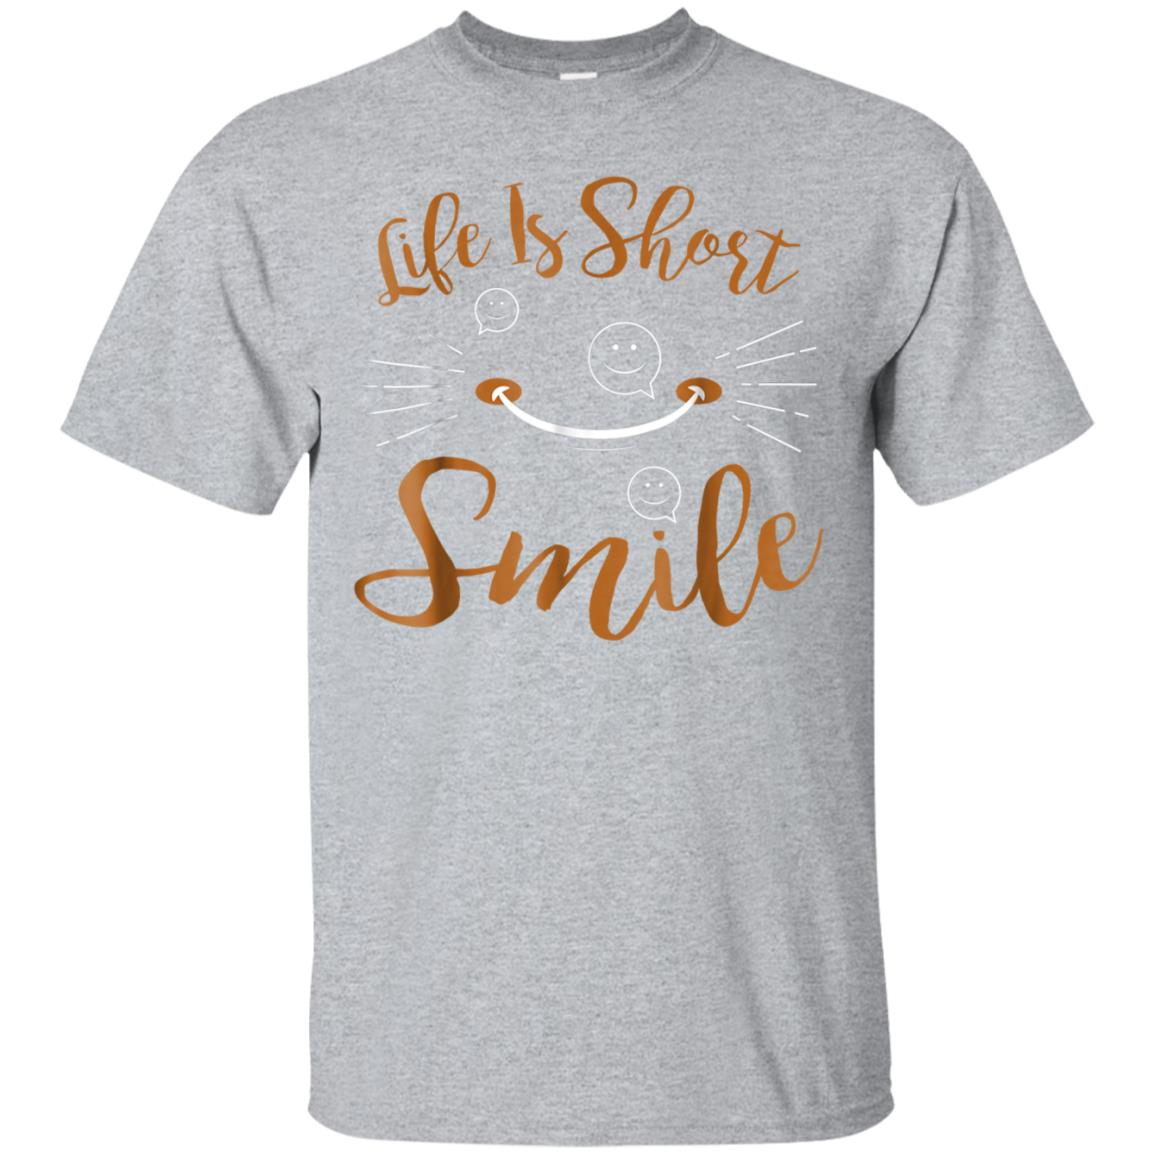 Smile Life is Short Funny t_shirt be Happy T-shirt 99promocode